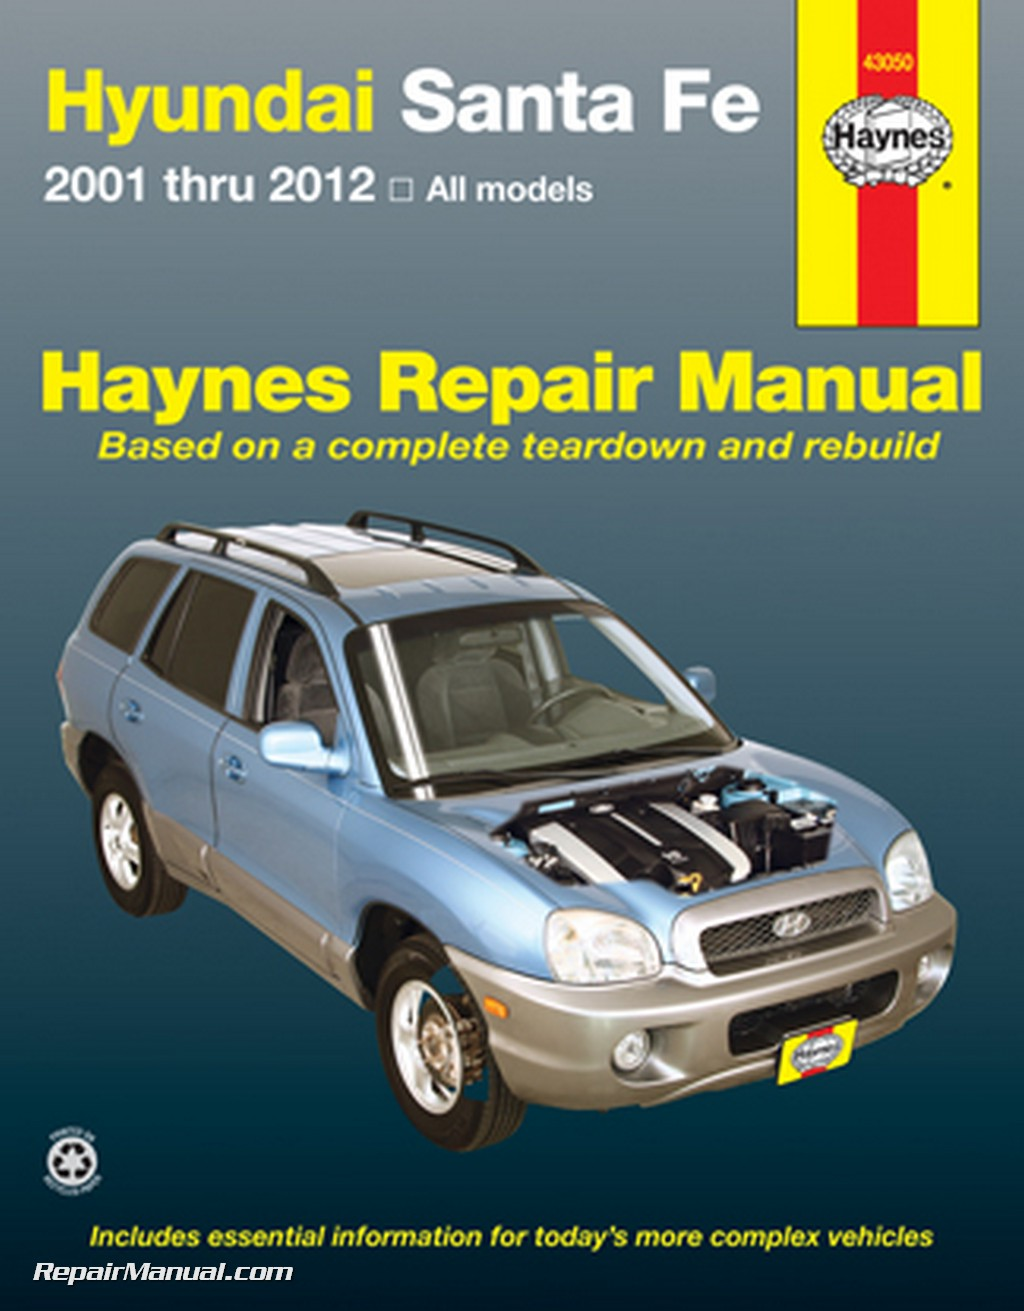 haynes hyundai santa fe 2001 2012 auto repair manual rh repairmanual com 2001 forester repair manual subaru forester 2001 repair manual